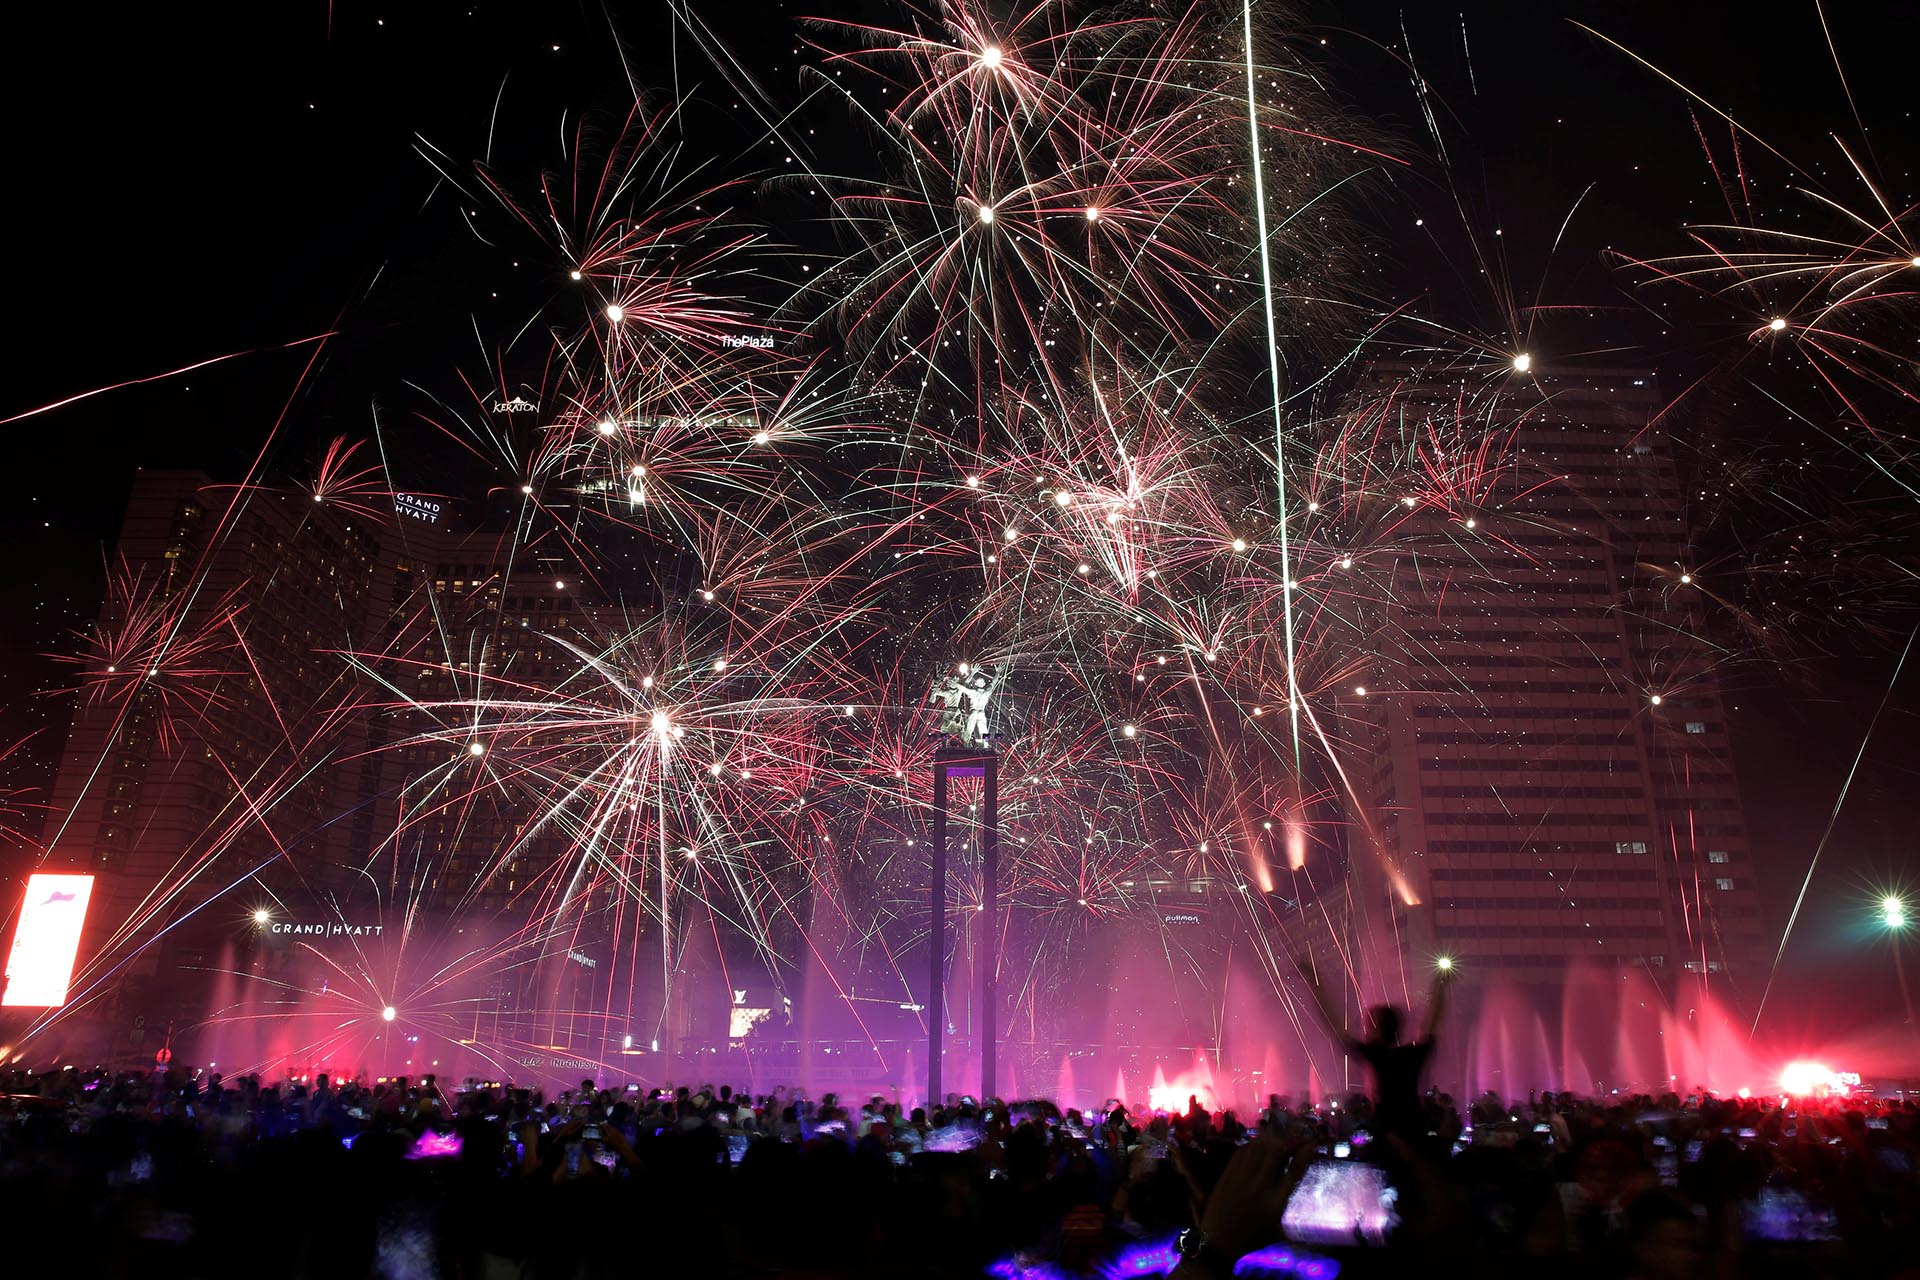 People watch fireworks explode around the Selamat Datang Monument during New Year's Eve celebrations in Jakarta, Indonesia December 31, 2016. REUTERS/Beawiharta